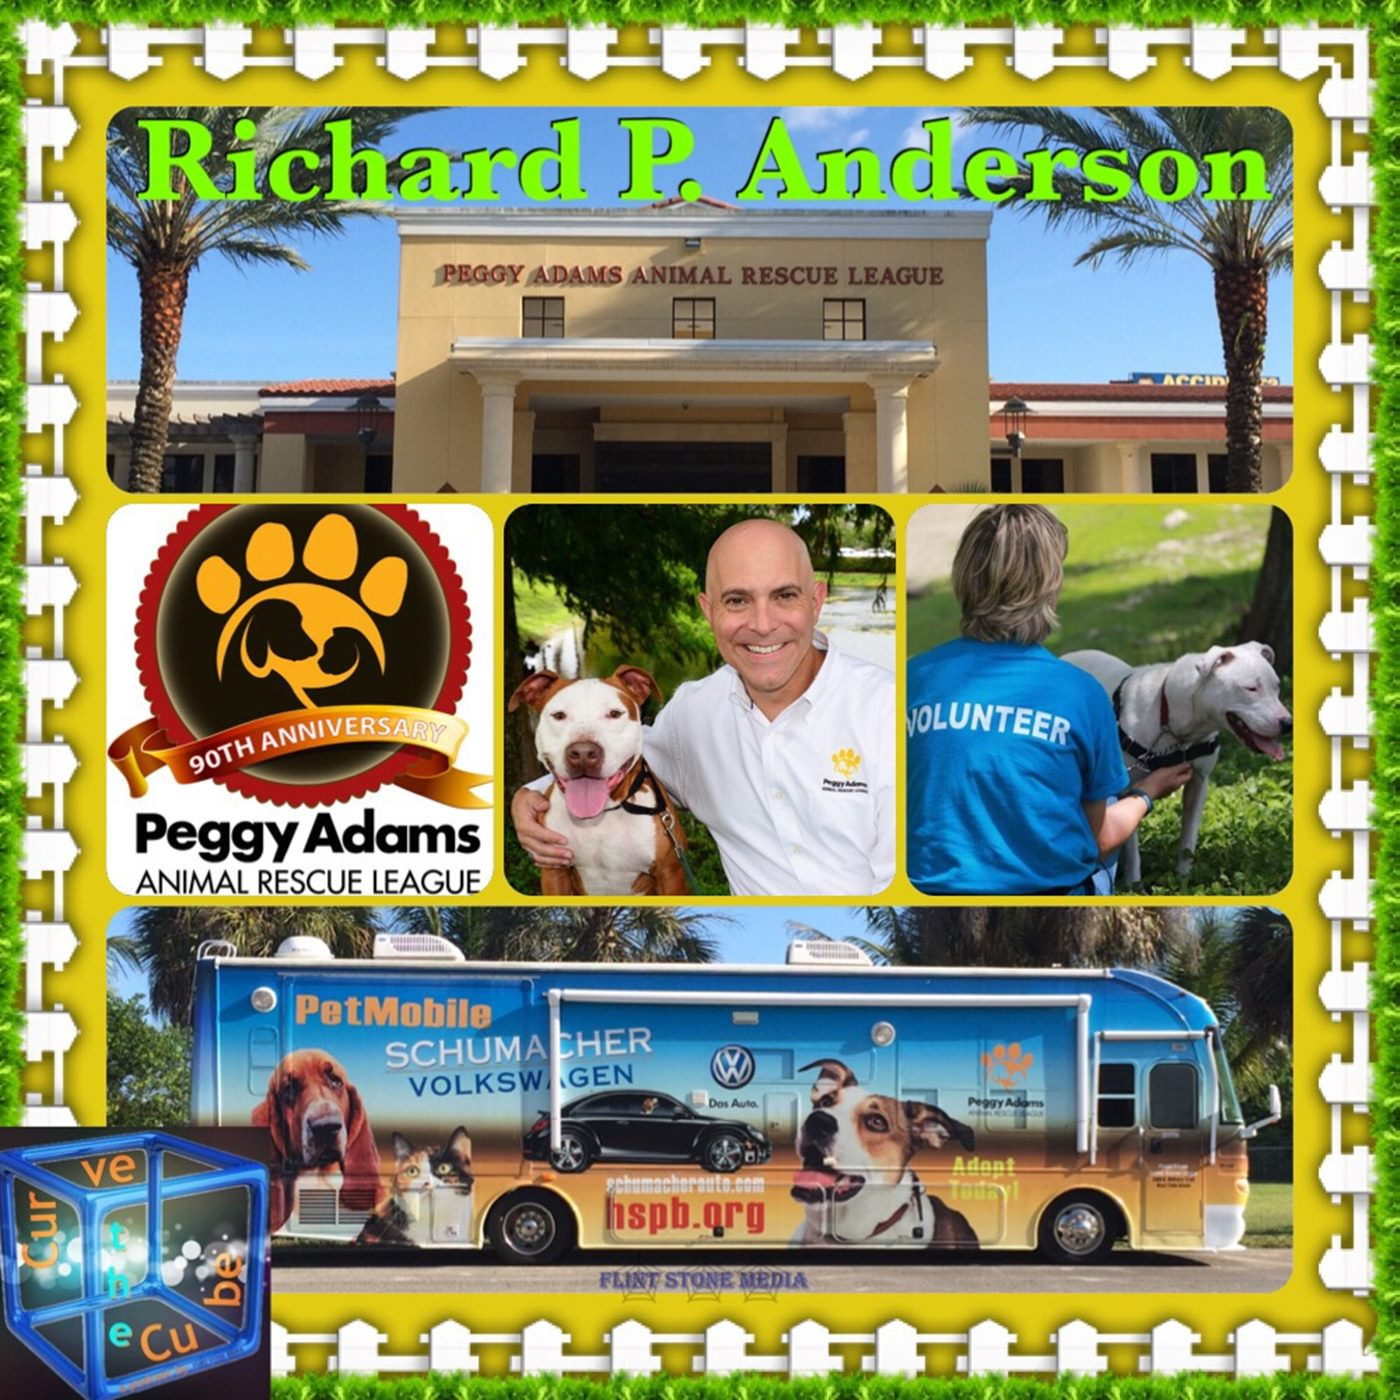 Richard P. Anderson, Executive Director & CEO of the Peggy Adams Animal Rescue